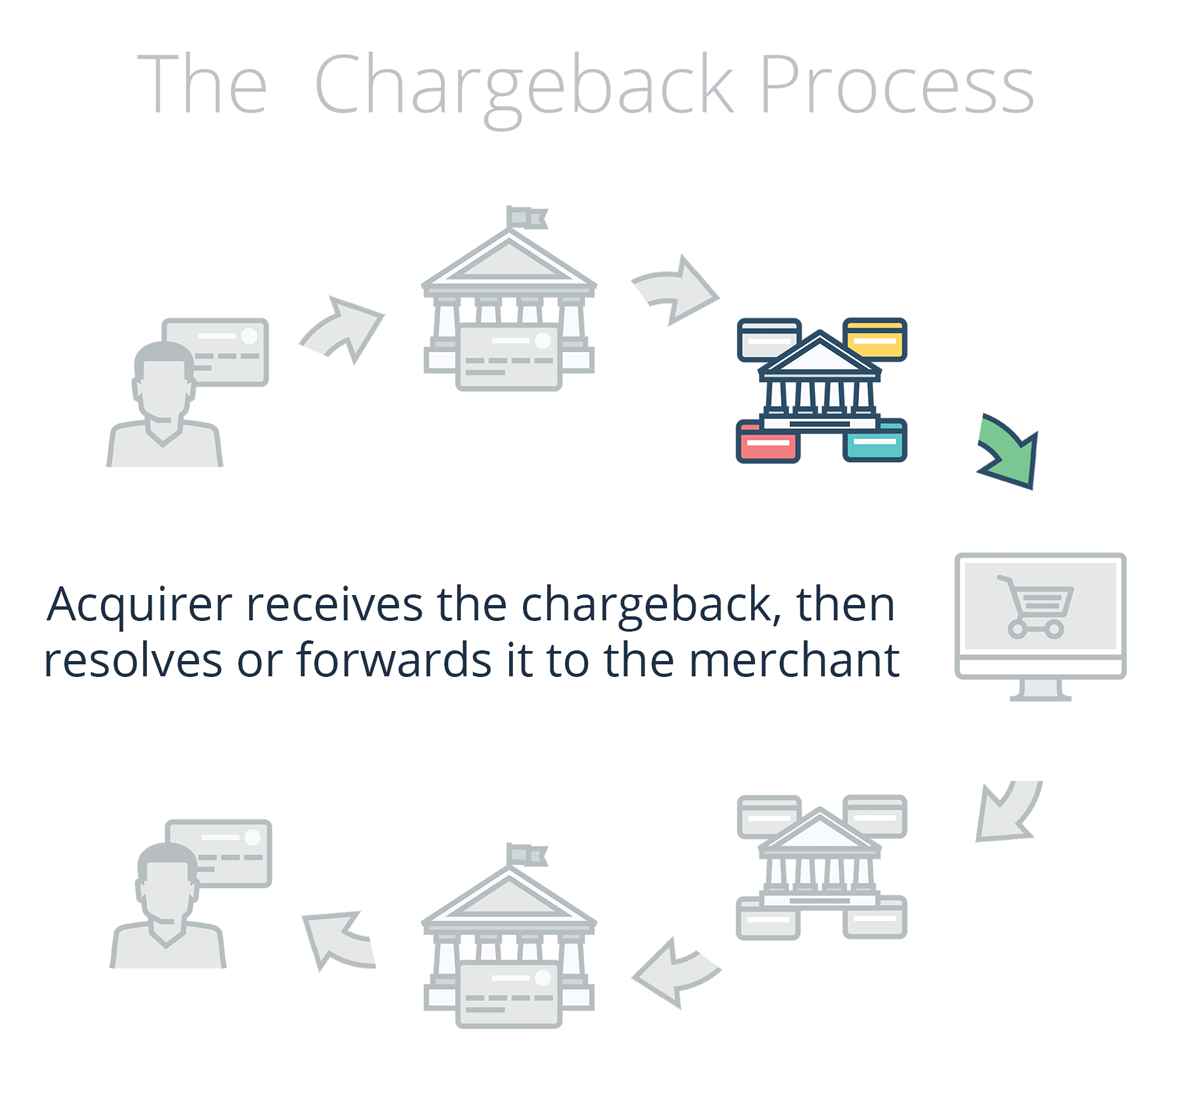 Acquirer receives the chargeback and resolves or passes to merchant